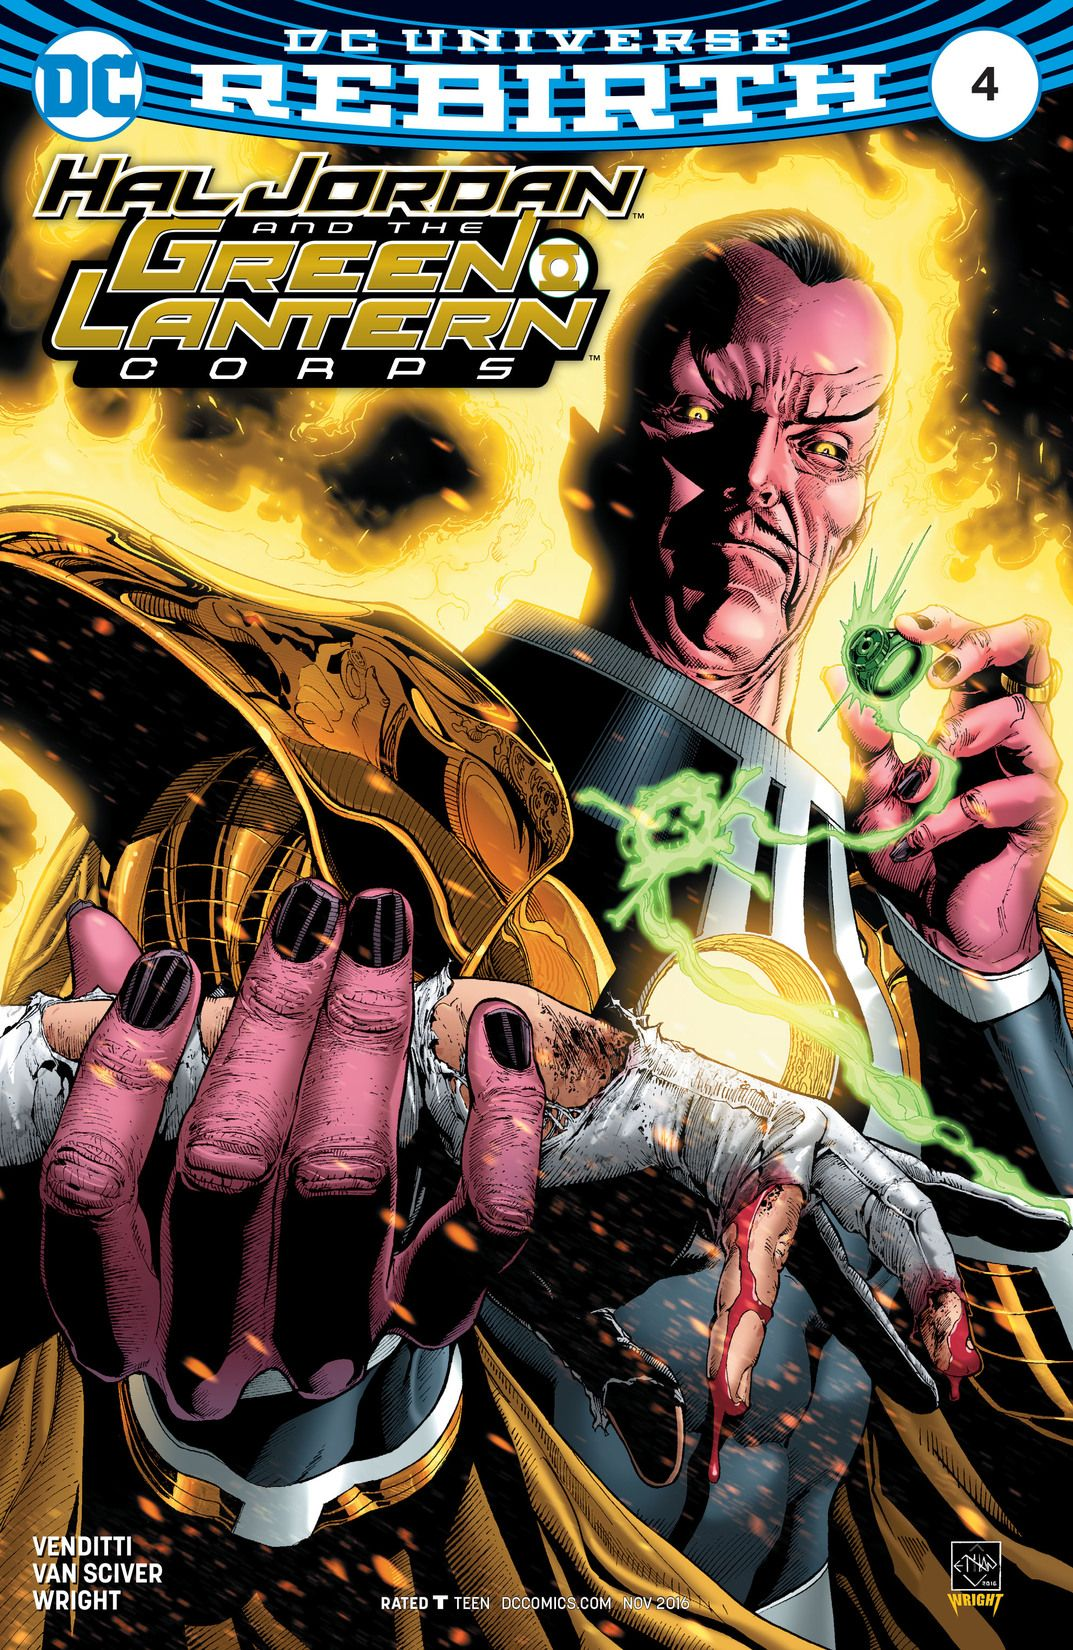 hal jordan and the green lantern corps vol 1 4 | dc database